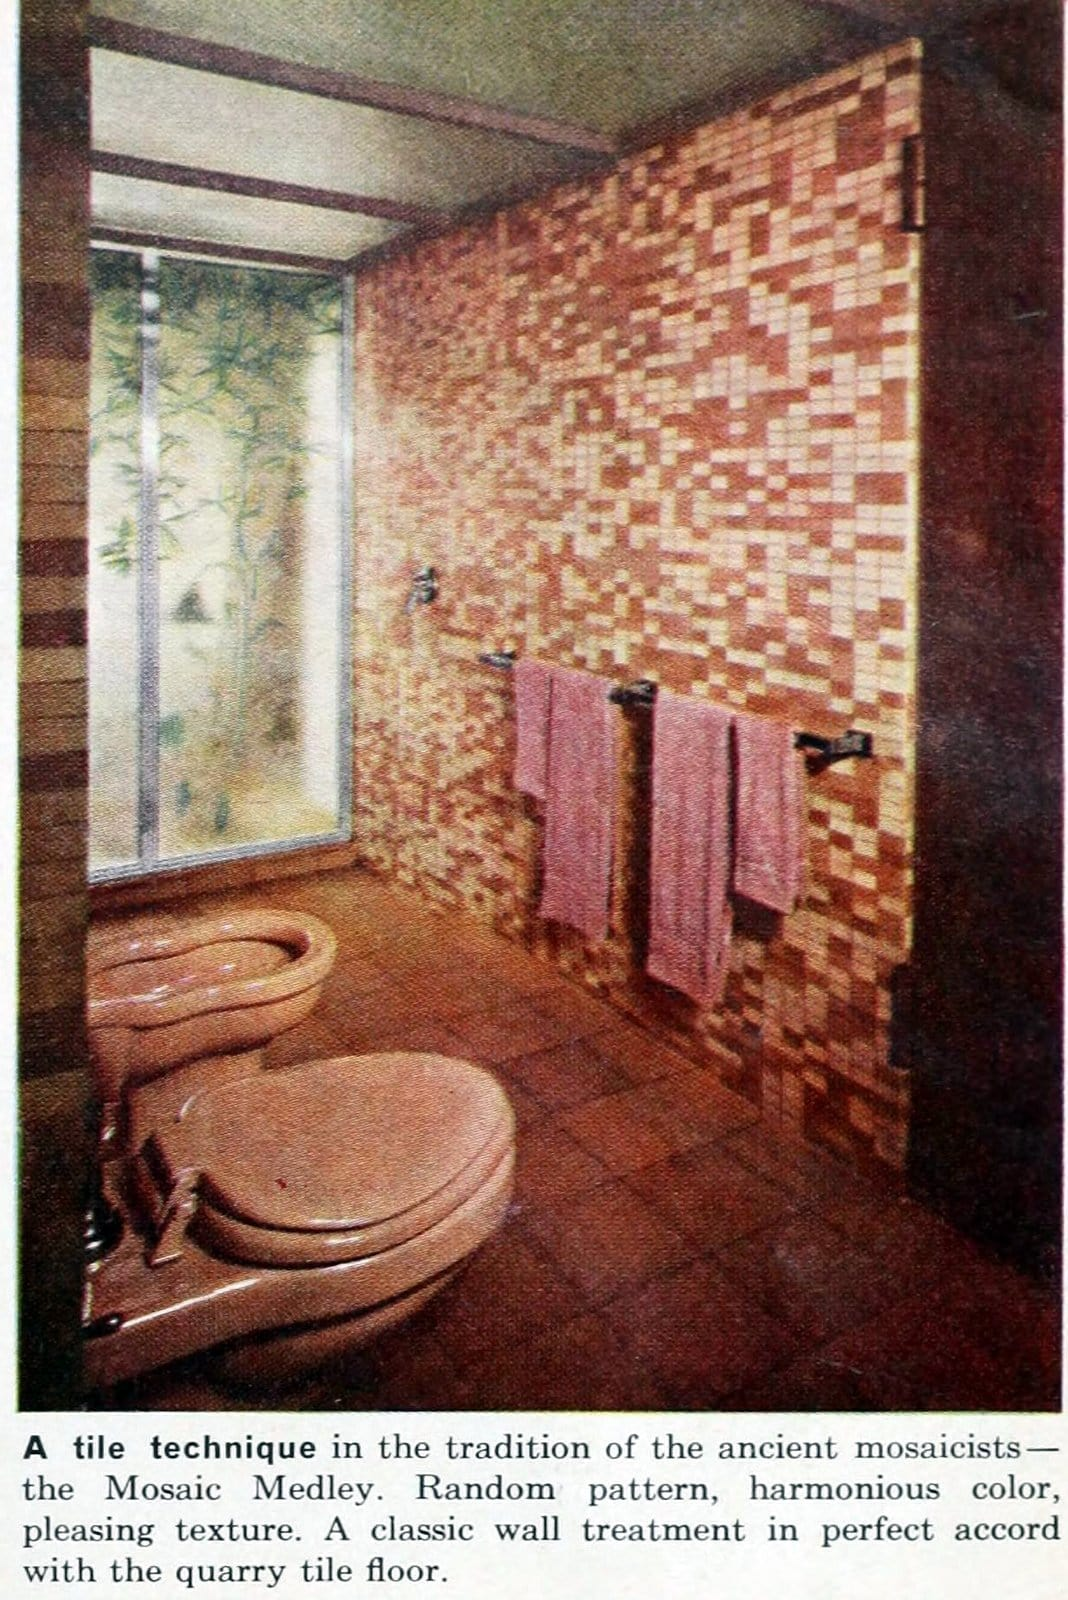 Shades of pink for a bathroom remodel in the fifties